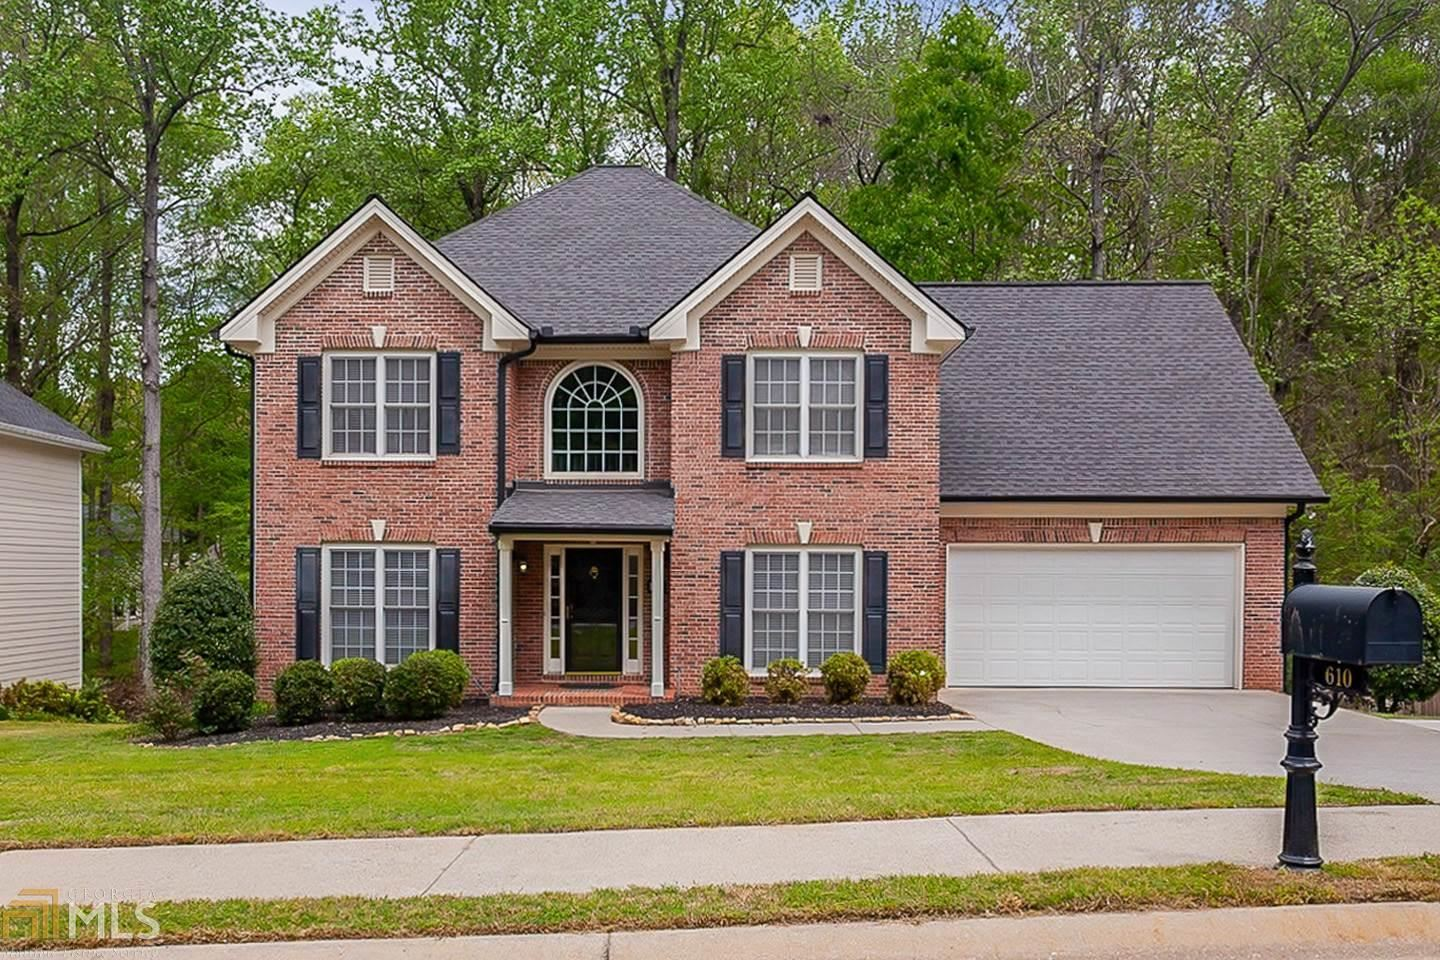 610 Golden Meadows, Suwanee, GA 30024 - #: 8768548